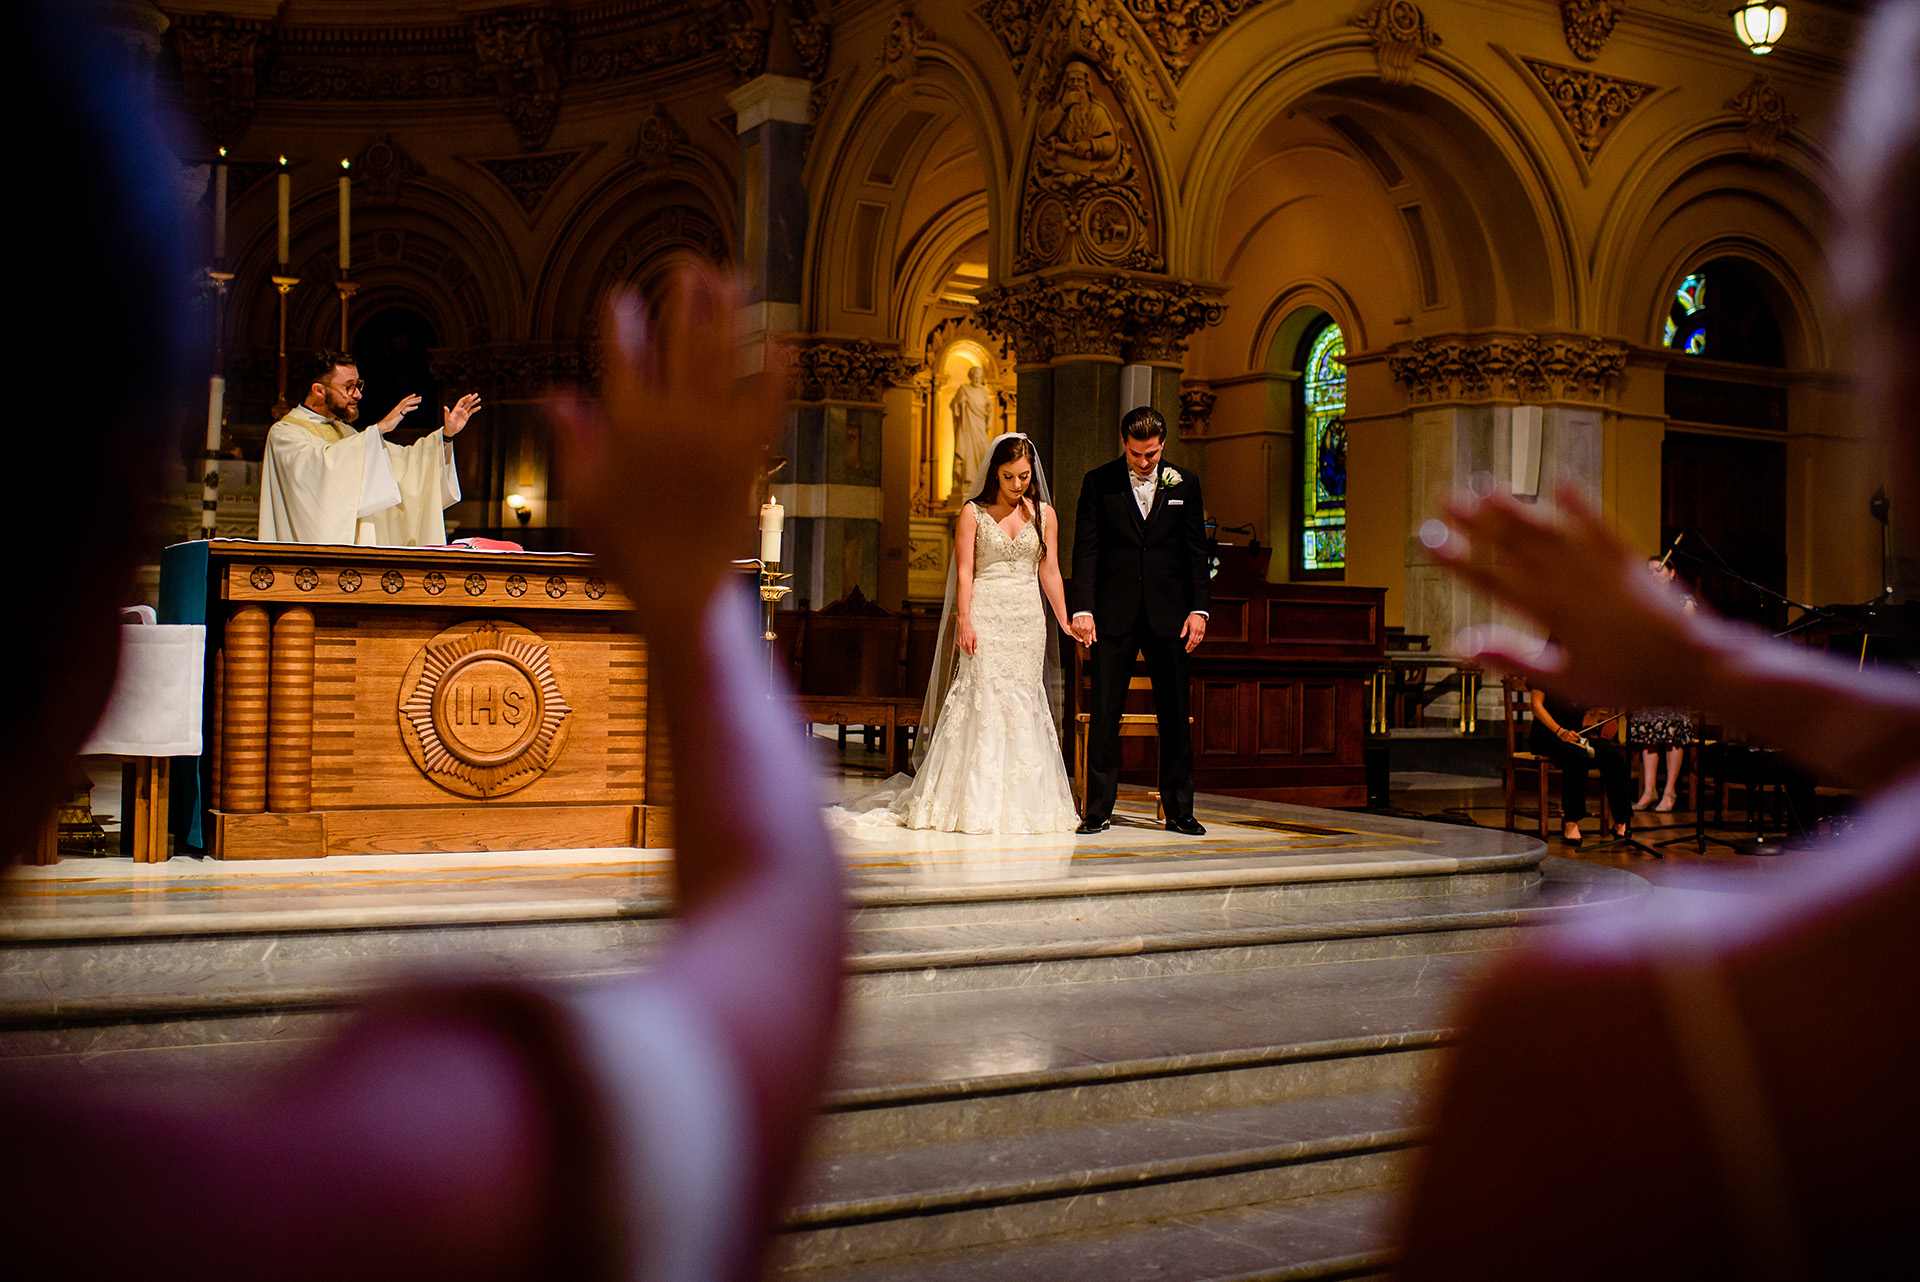 Denis Gostev, of New York, is a wedding photographer for St. Francis Xavier Church